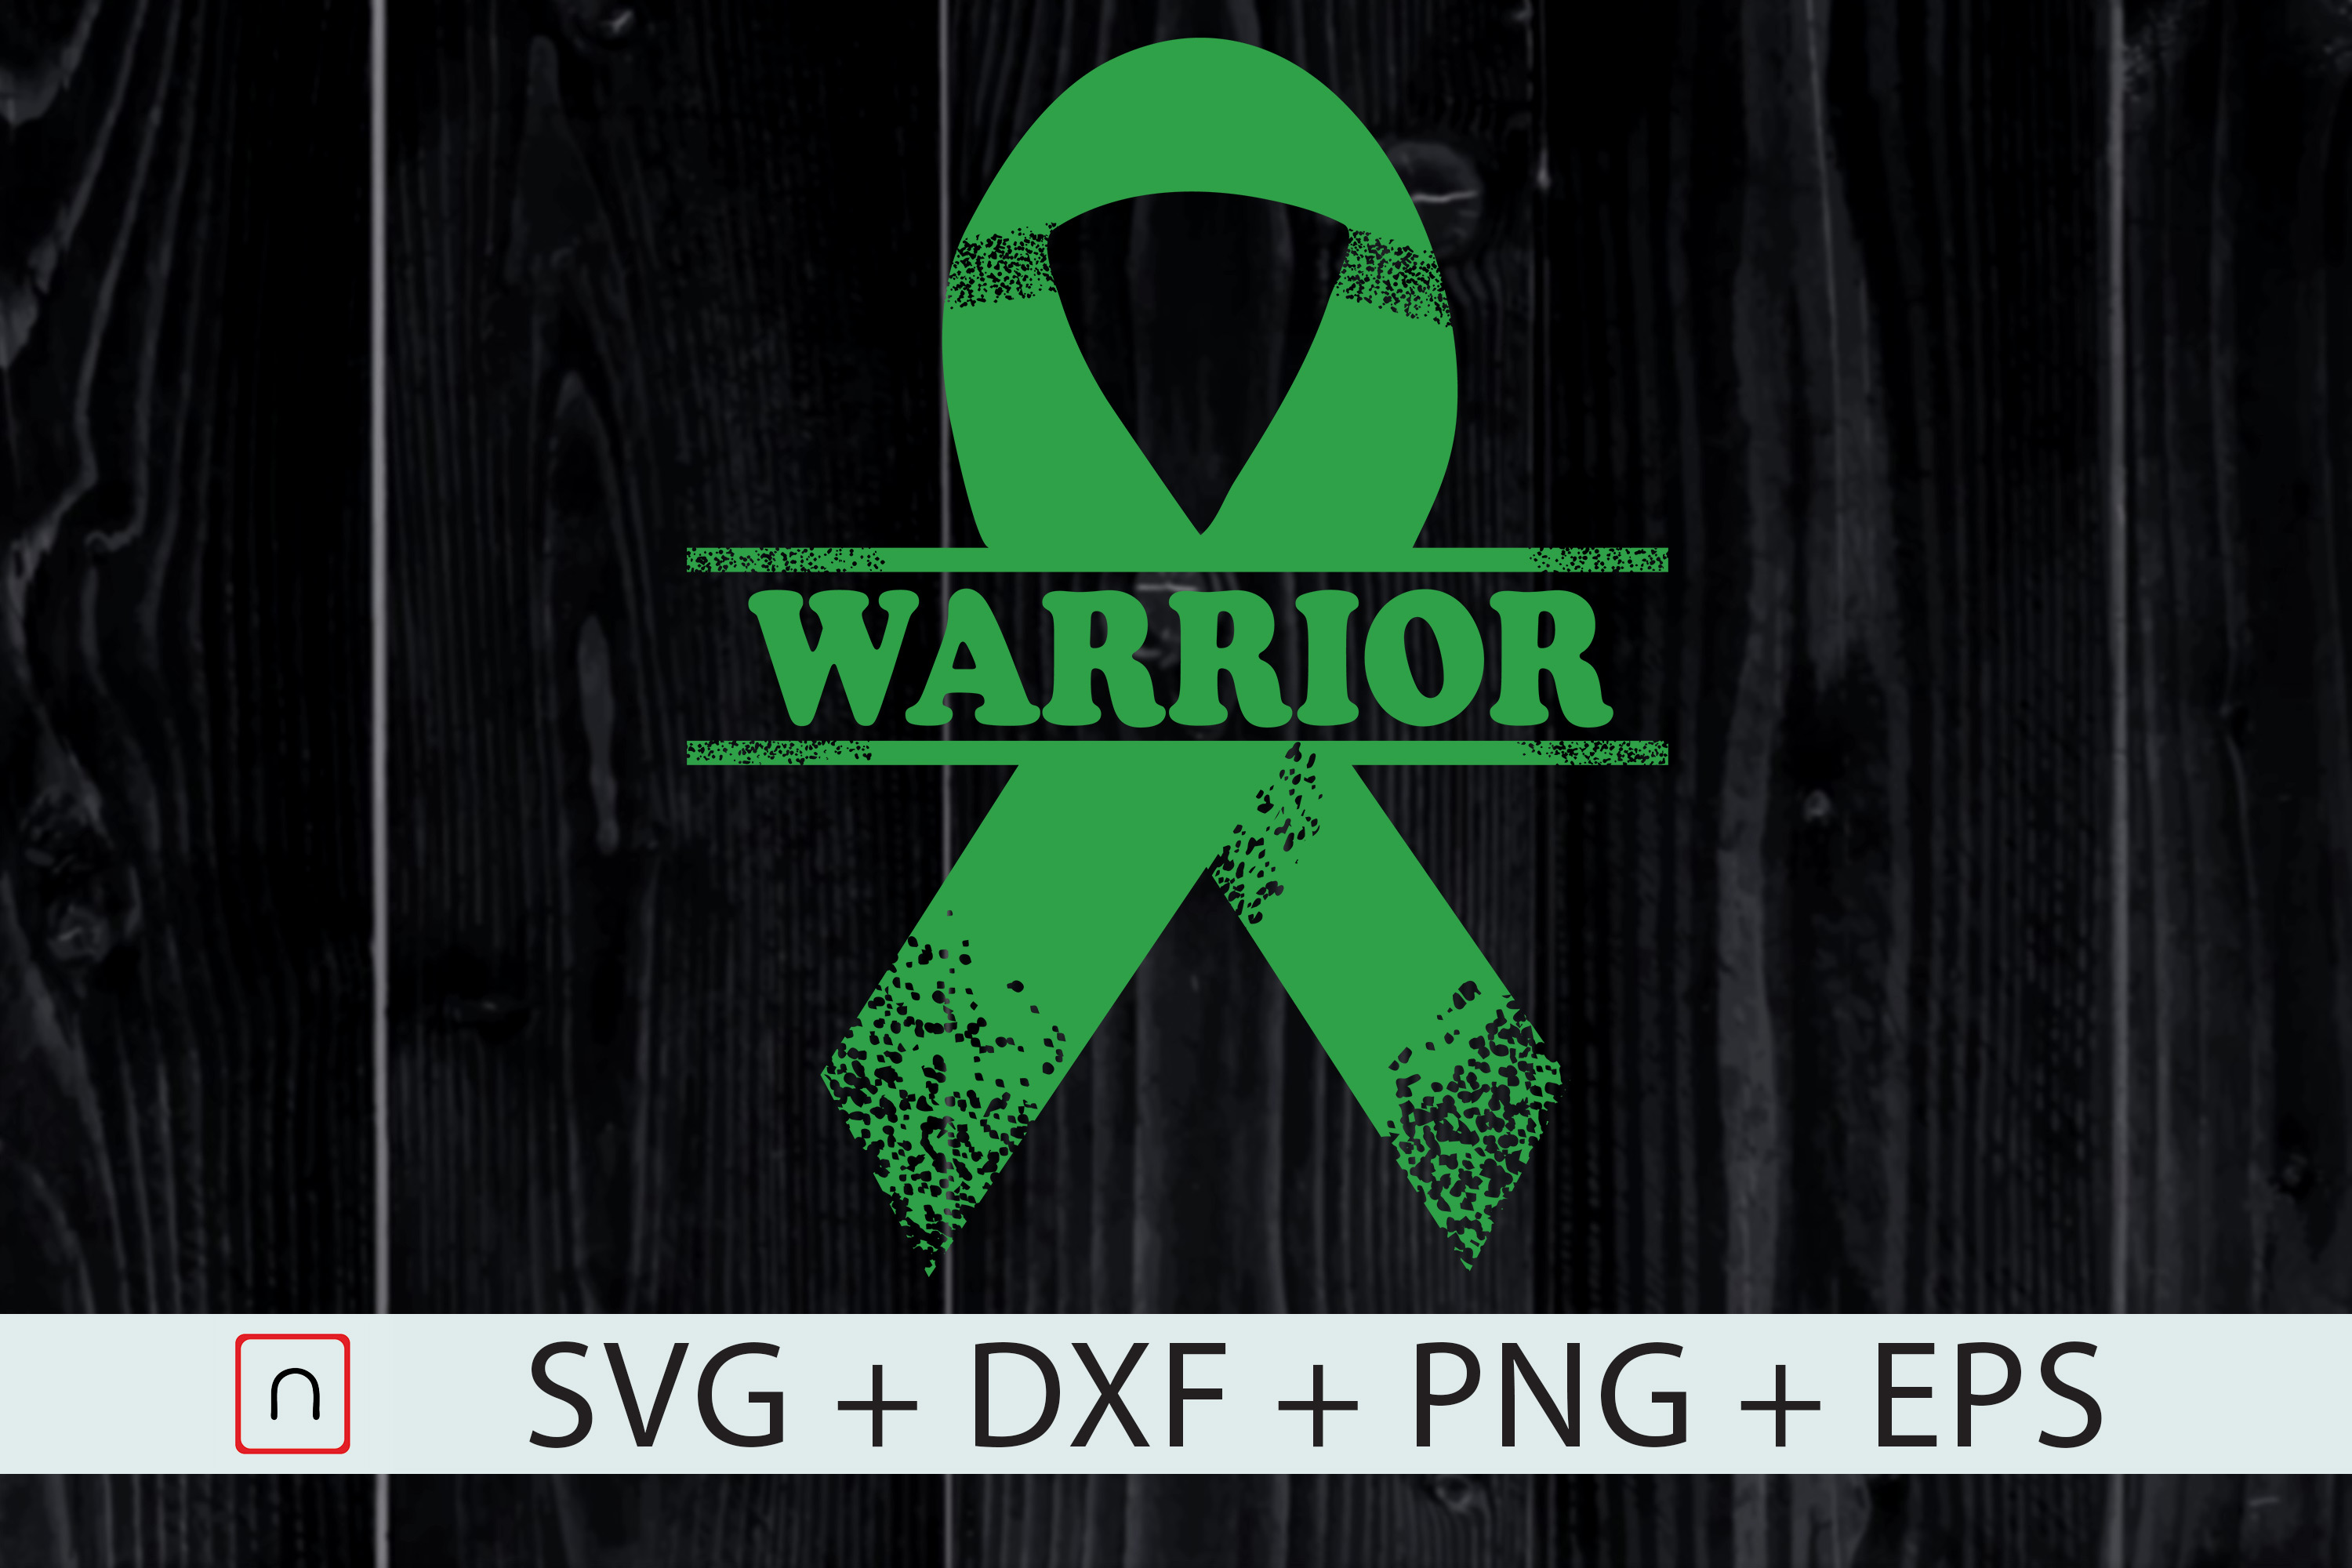 Download Free Warrior Green Traumatic Brain Injury Graphic By Novalia for Cricut Explore, Silhouette and other cutting machines.